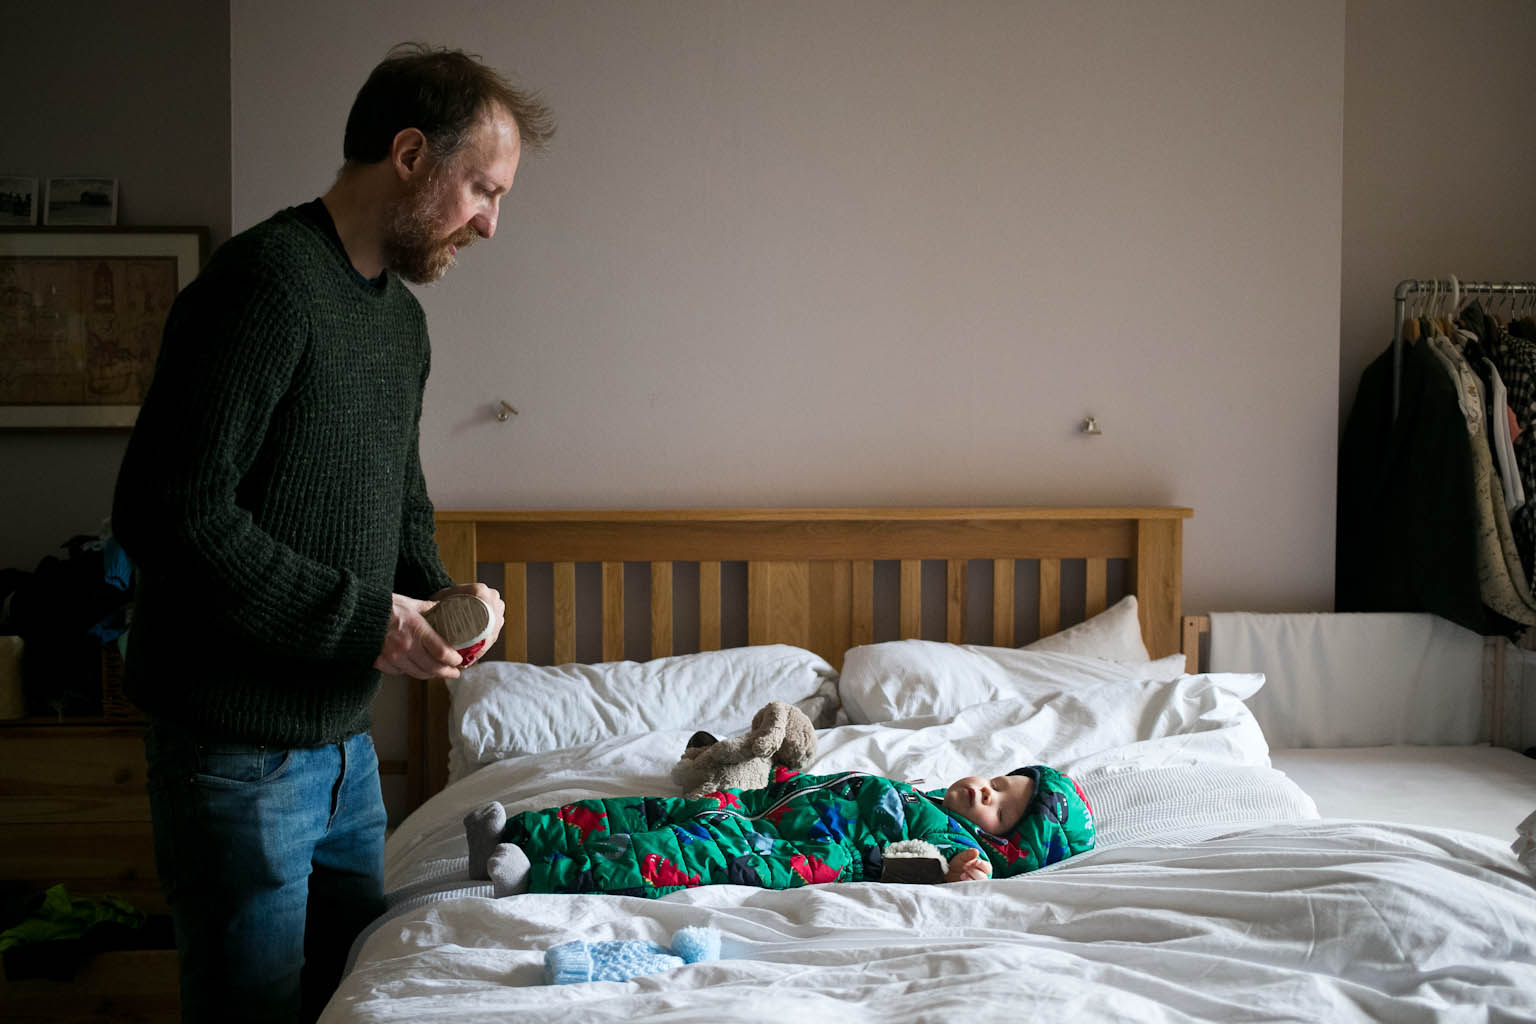 Father holding little shoe looking at sleeping baby boy on bed wearing outdoor suit